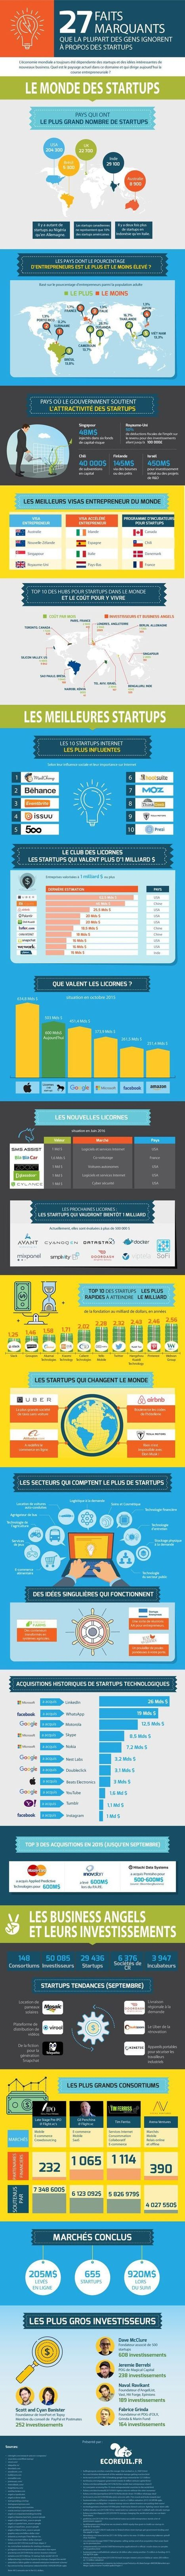 27 trucs à savoir sur les startups | Innovative Marketing & Communication | Scoop.it